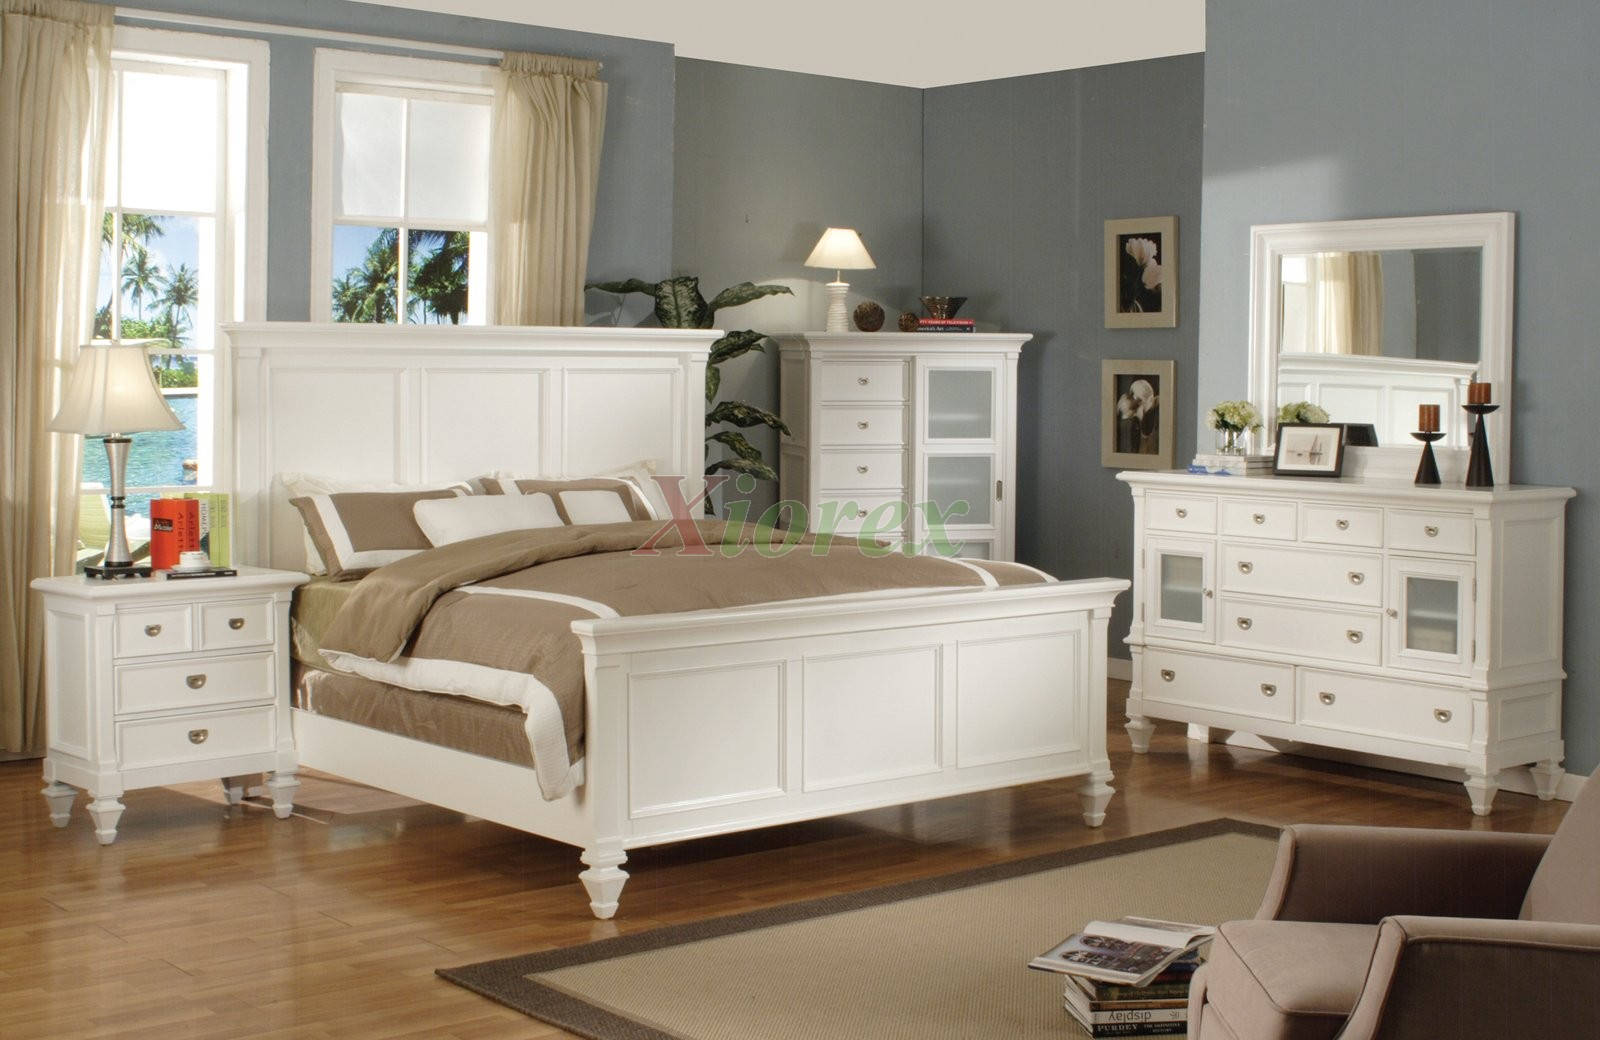 Bedroom furniture set 126 xiorex - White bedroom furniture for girl ...